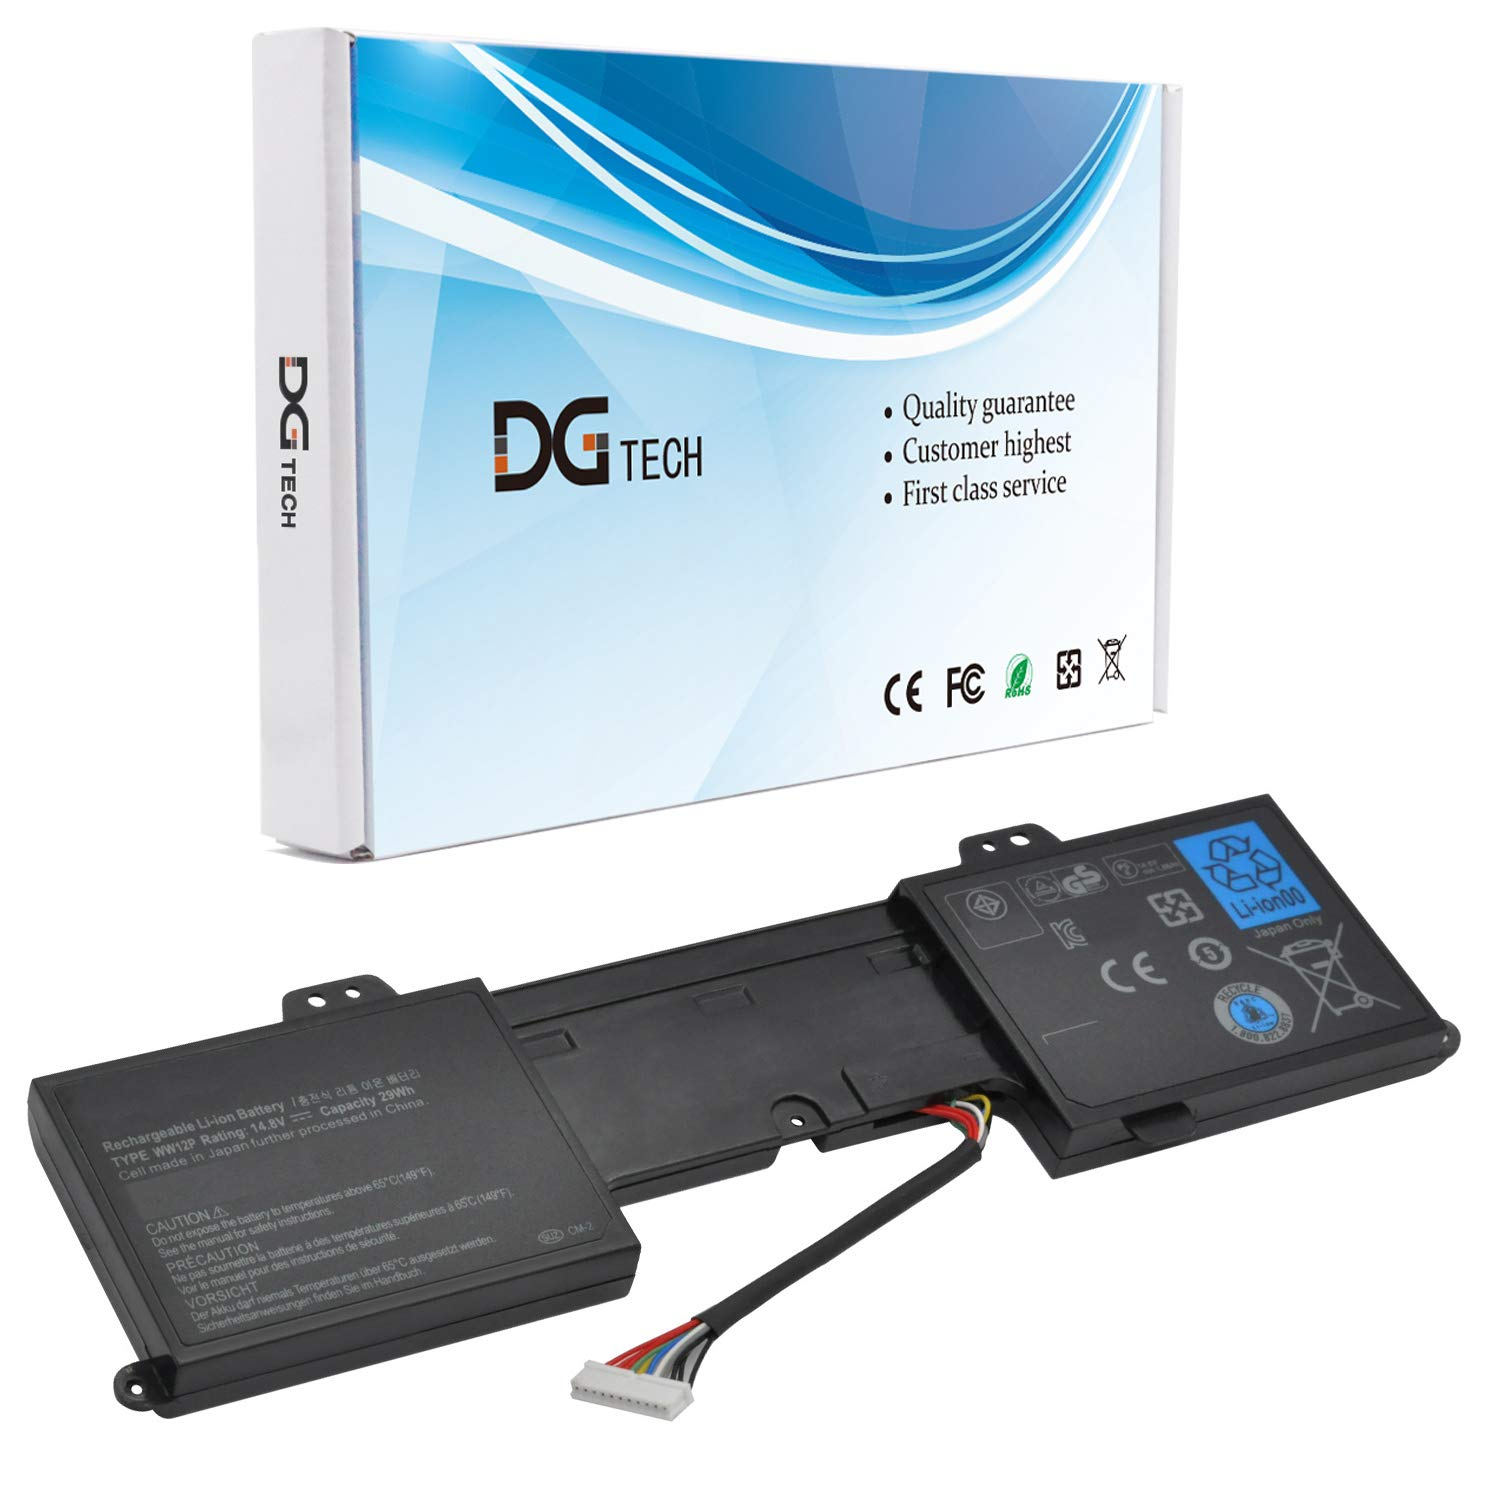 Bateria Ww12p Para Dell Inspiron Duo 1090 Tablet Pc Convertible 9yxn1 Tr2f1 14.8v 29wh